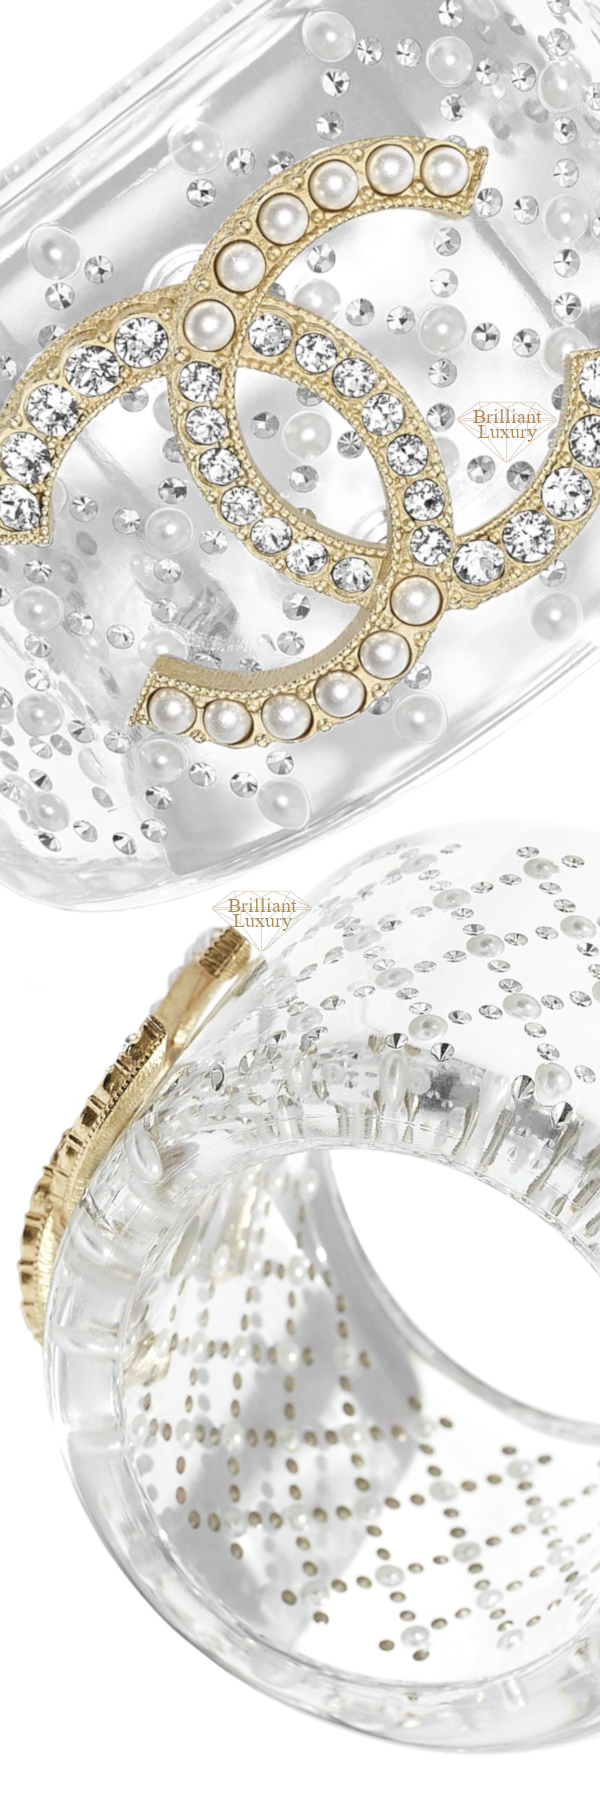 CHANEL Transparent Pearly White CC Cuff #jewelry